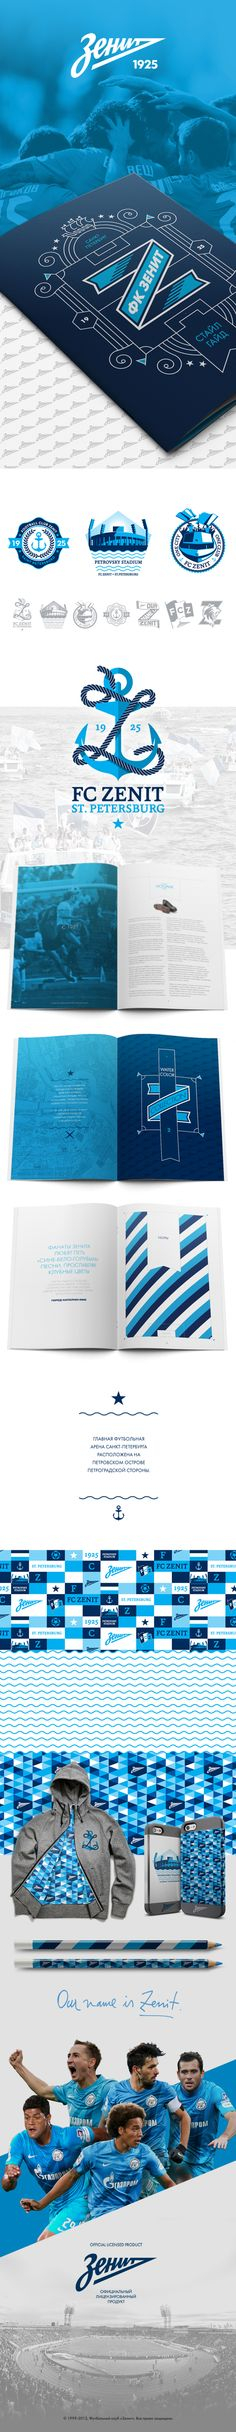 FC ZENIT / ФК ЗЕНИТ by Battagliotti Bros. , via Behance